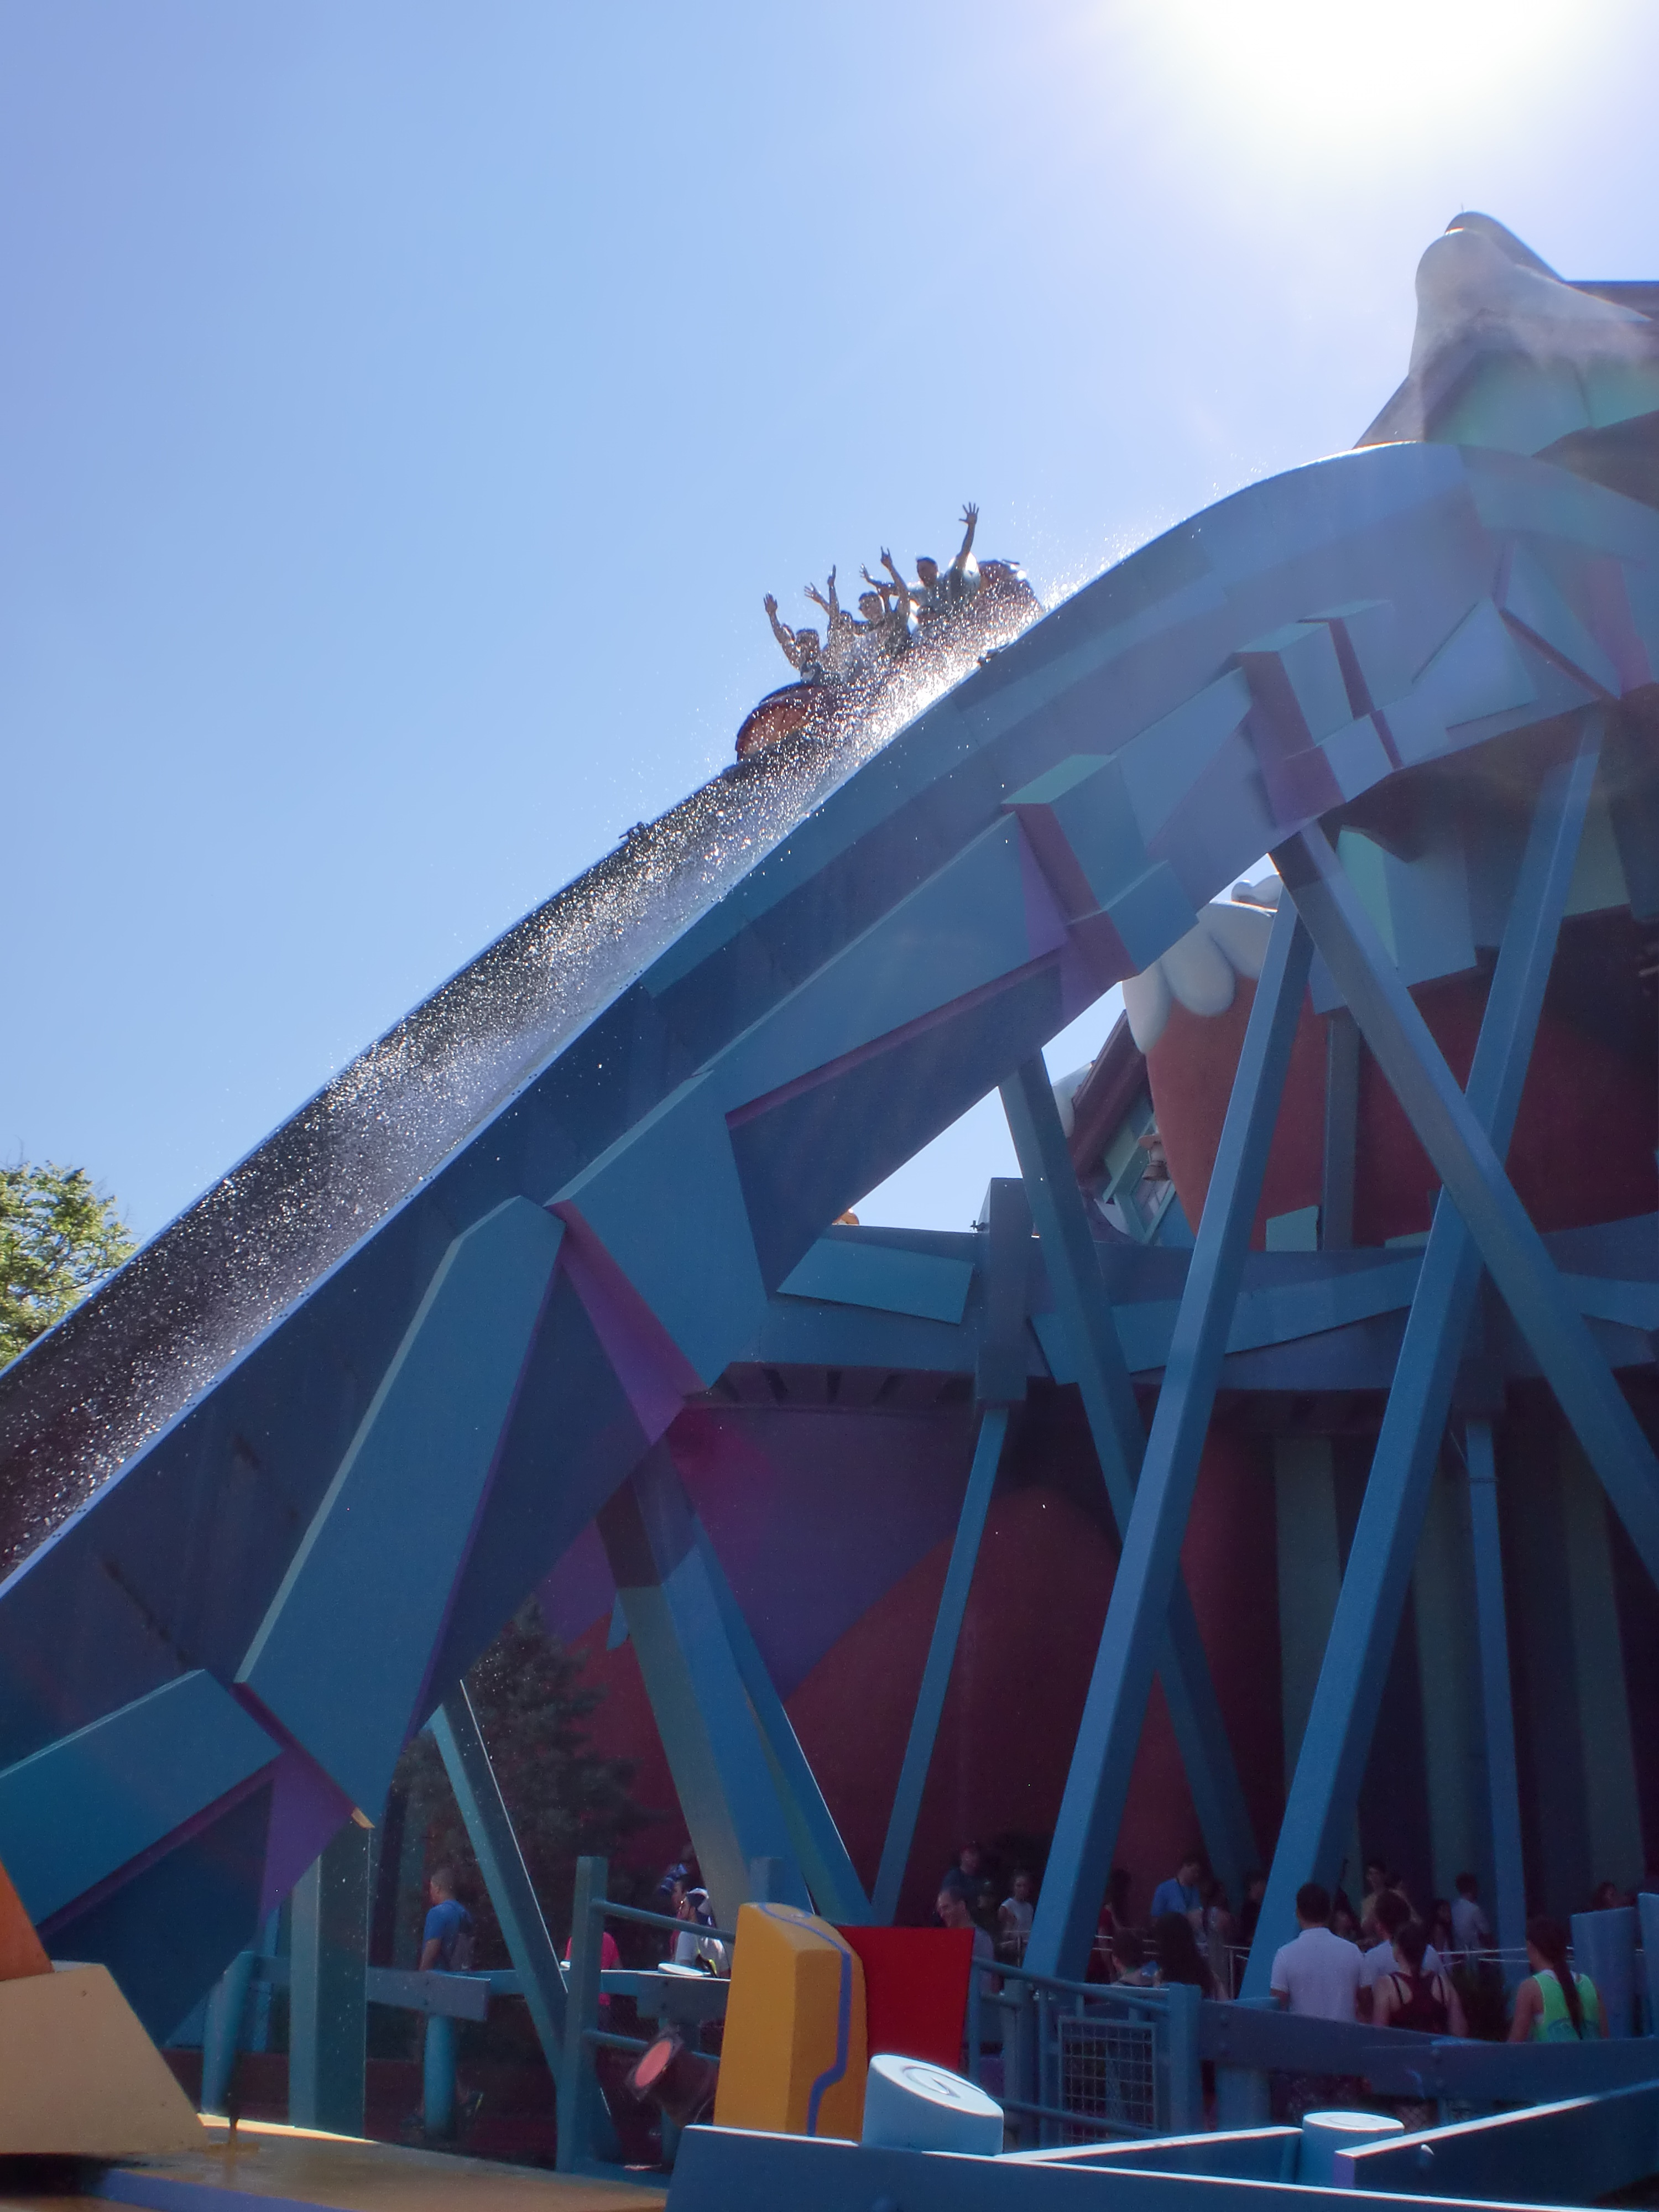 A water-flume ride drops down a steep hill carrying a family raising their arms on a bright summer's day.